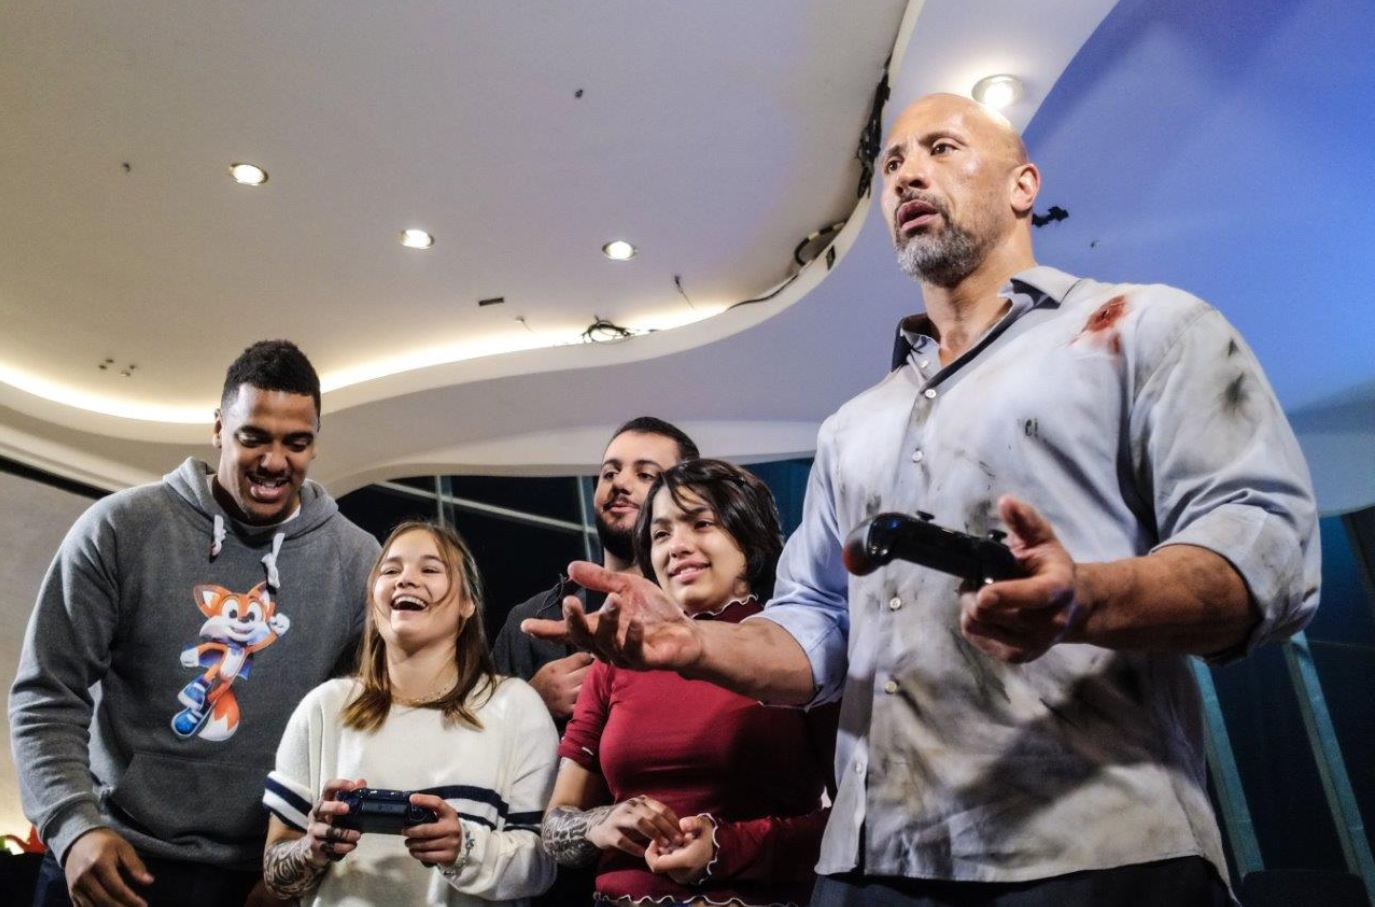 The Rock gifts custom Xbox One X consoles to a few Make-A-Wish kids for the holiday season